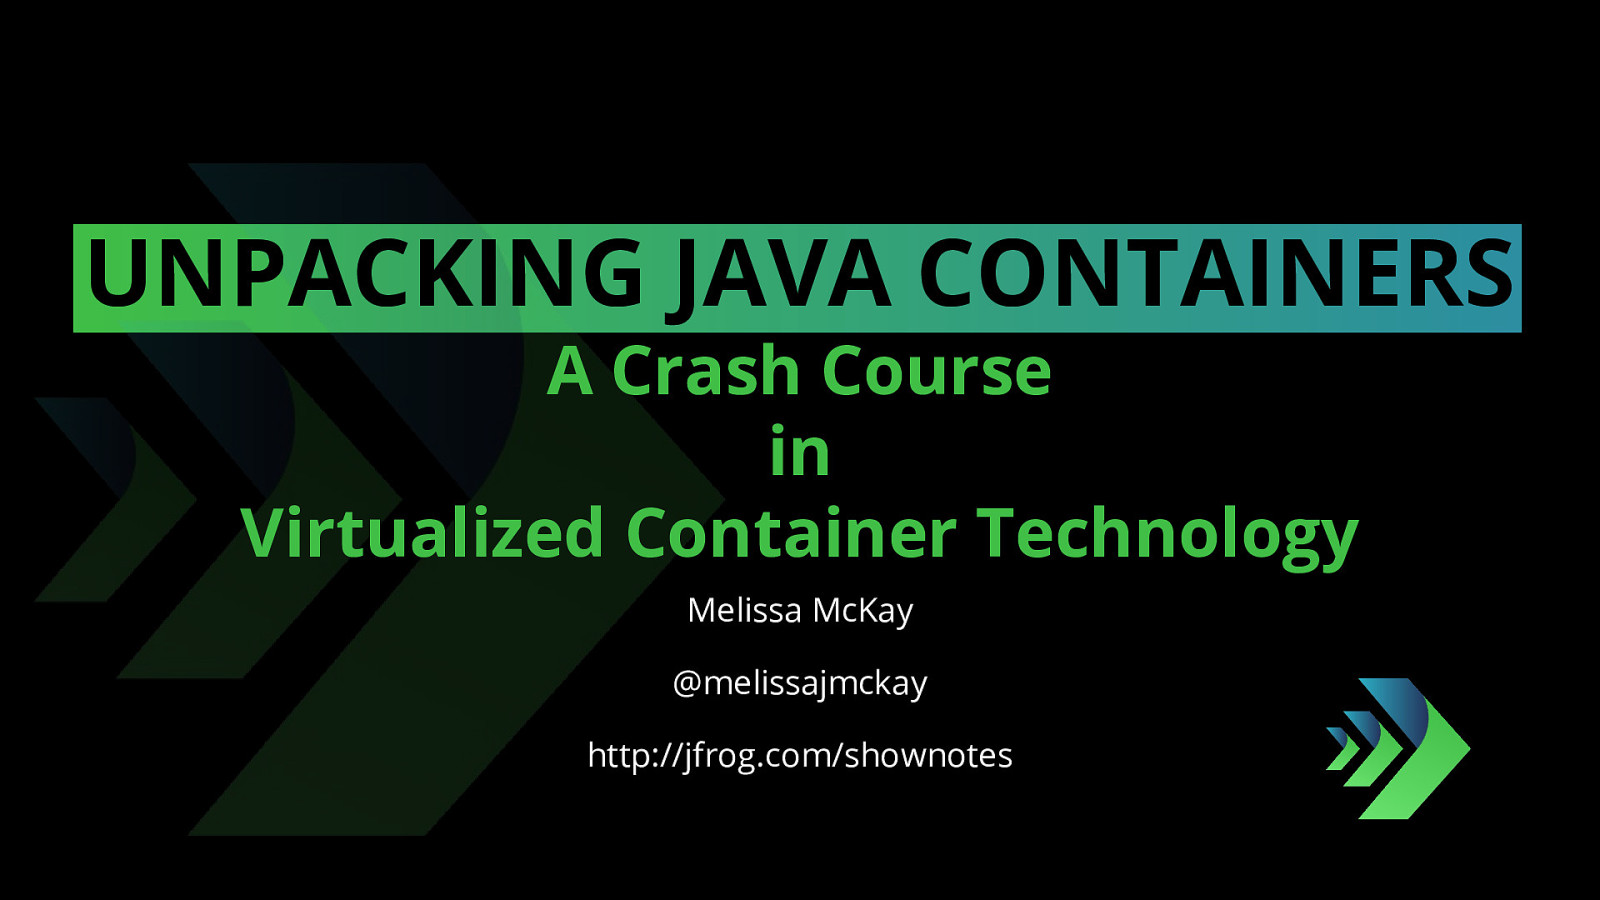 Unpacking Java Containers: A Crash Course in Virtualized Container Technology